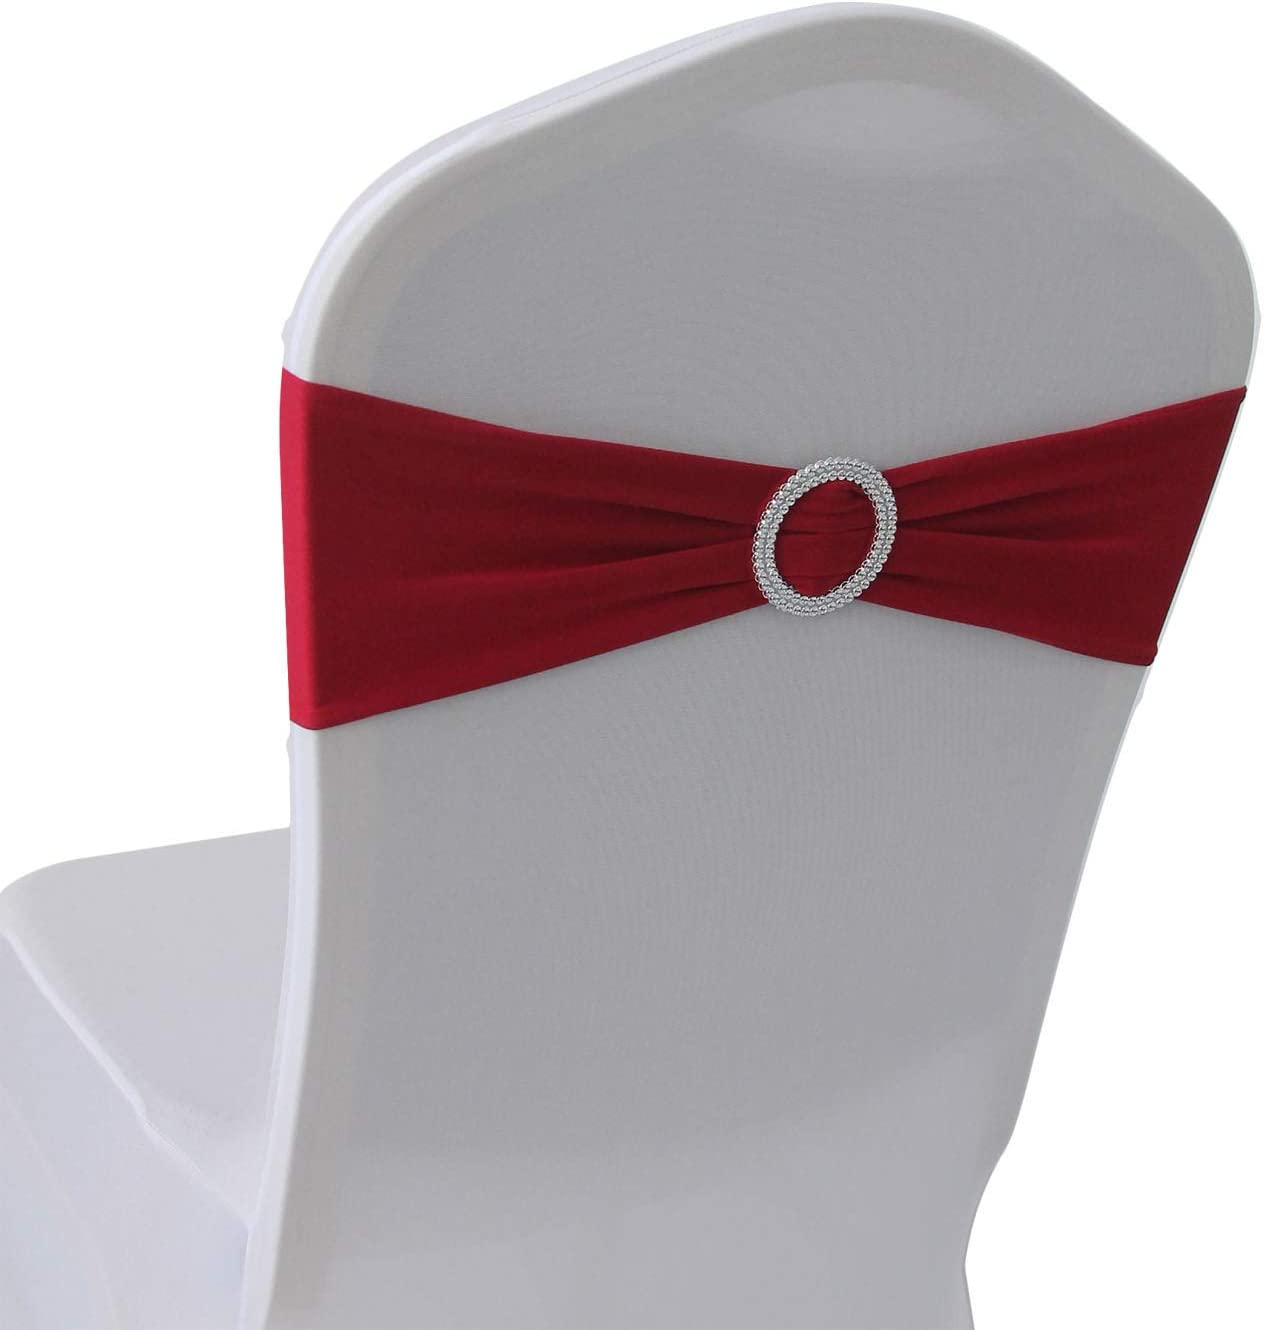 Cherry Red Spandex Chair Bands Sashes - 100 pcs Wedding Banquet Party Event Decoration Chair Bows Ties (Cherry Red, 100 pcs)